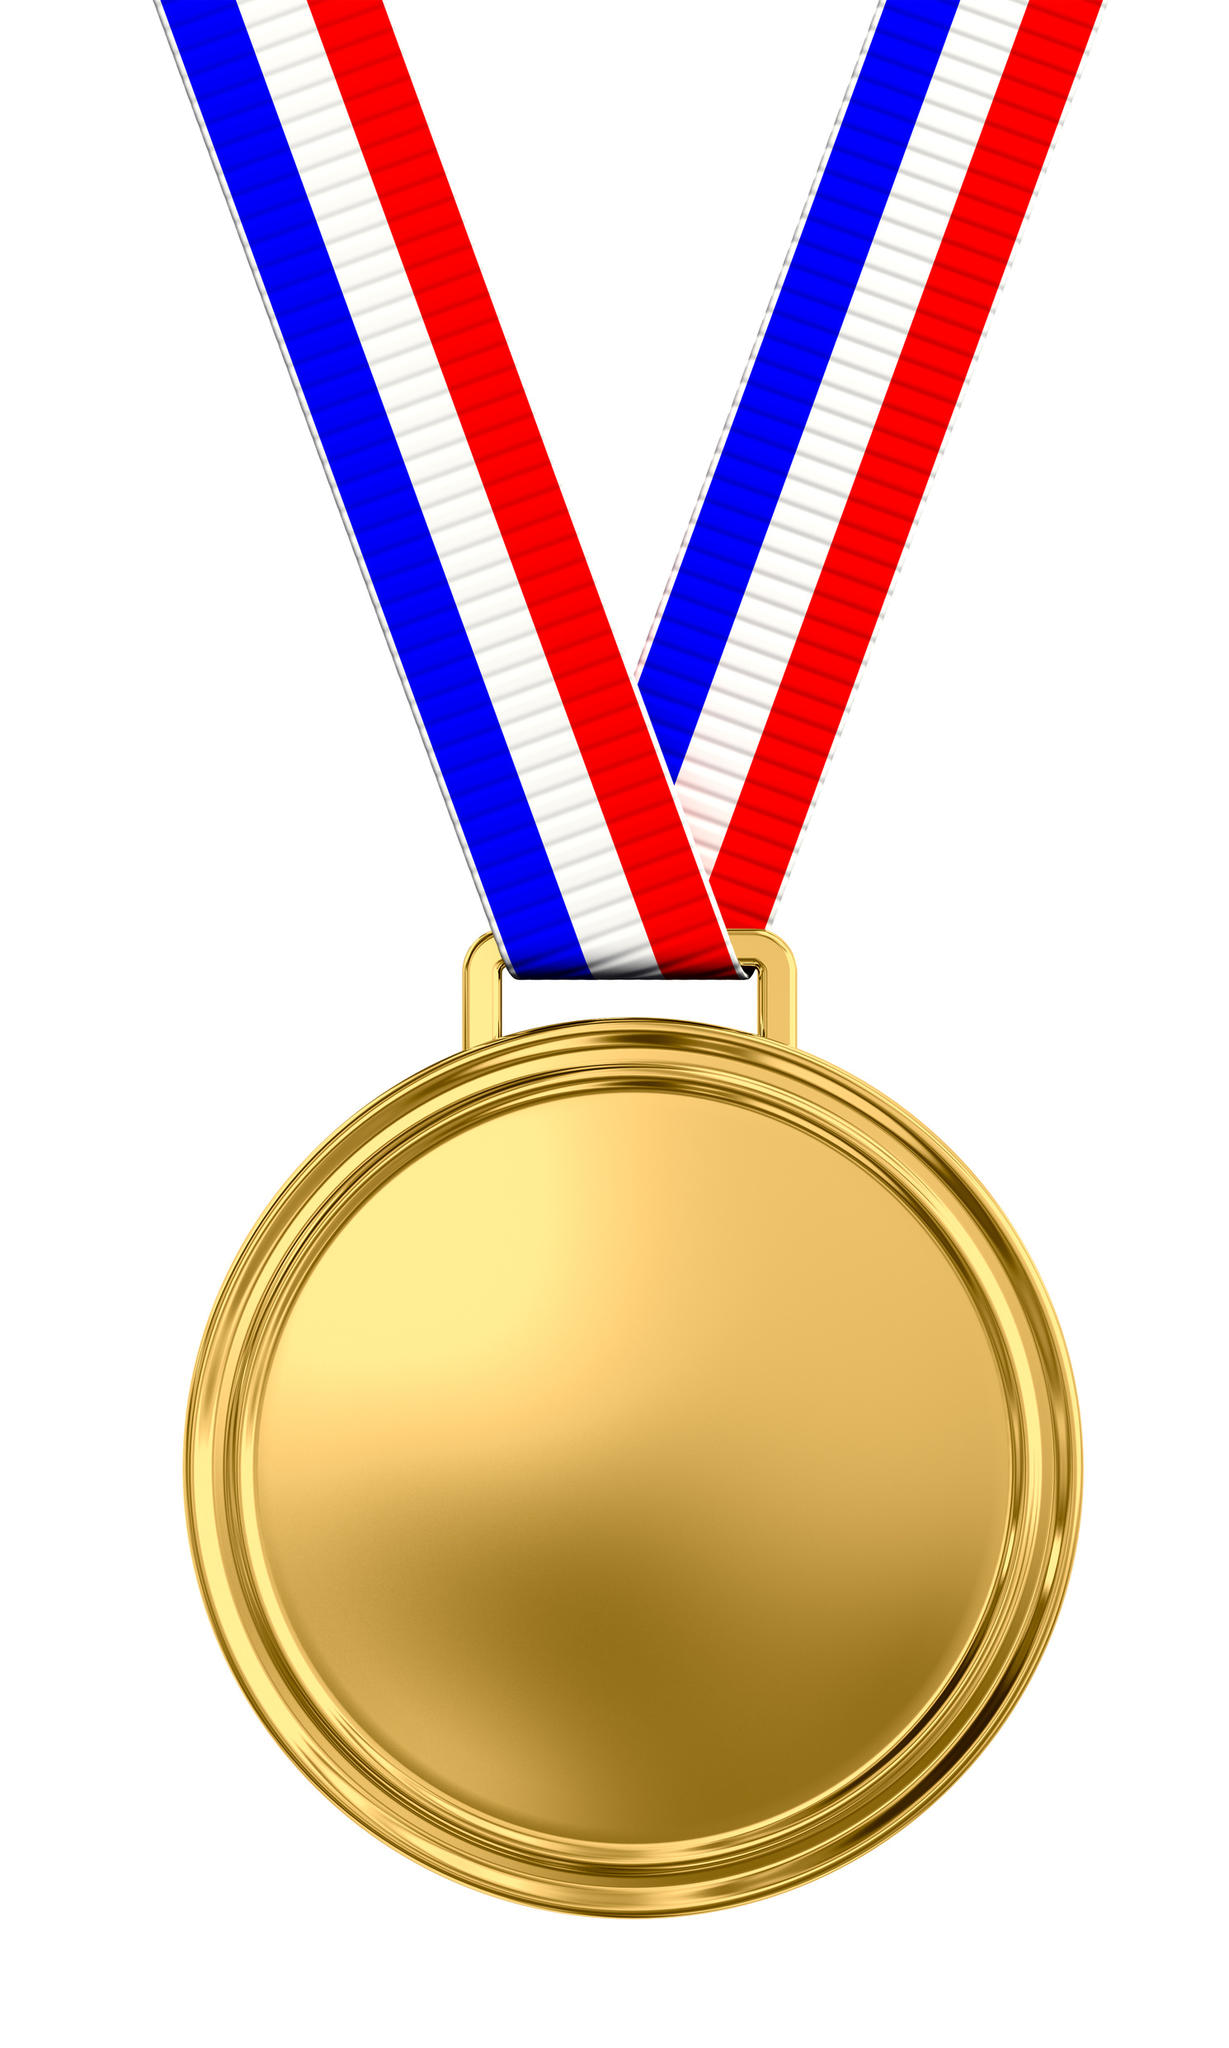 Gold Medal Transparent Background.